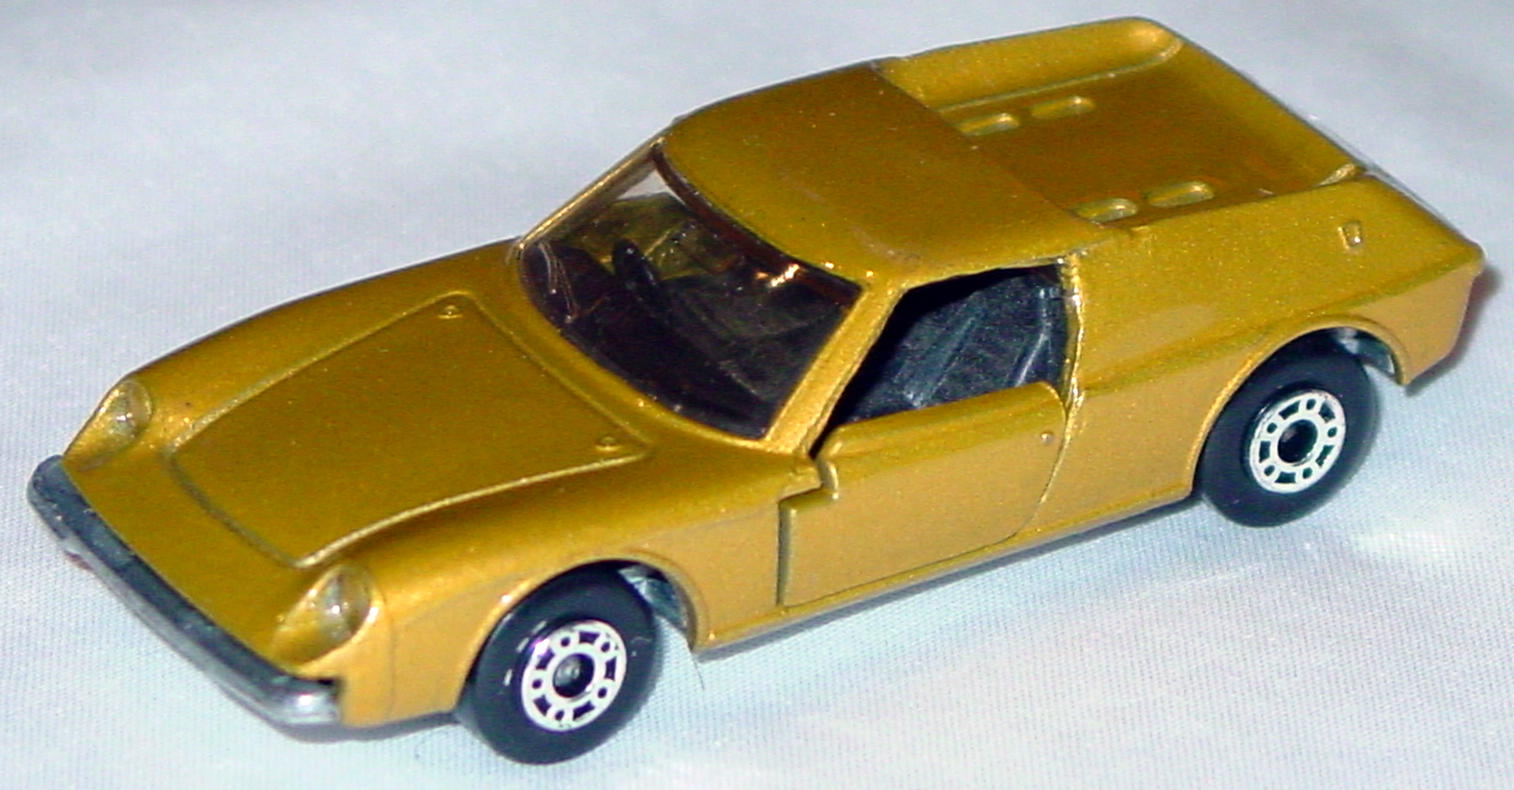 Bulgarian 05 A 3 - Lotus Europa met Gold sil-grey black light amwin roofrub